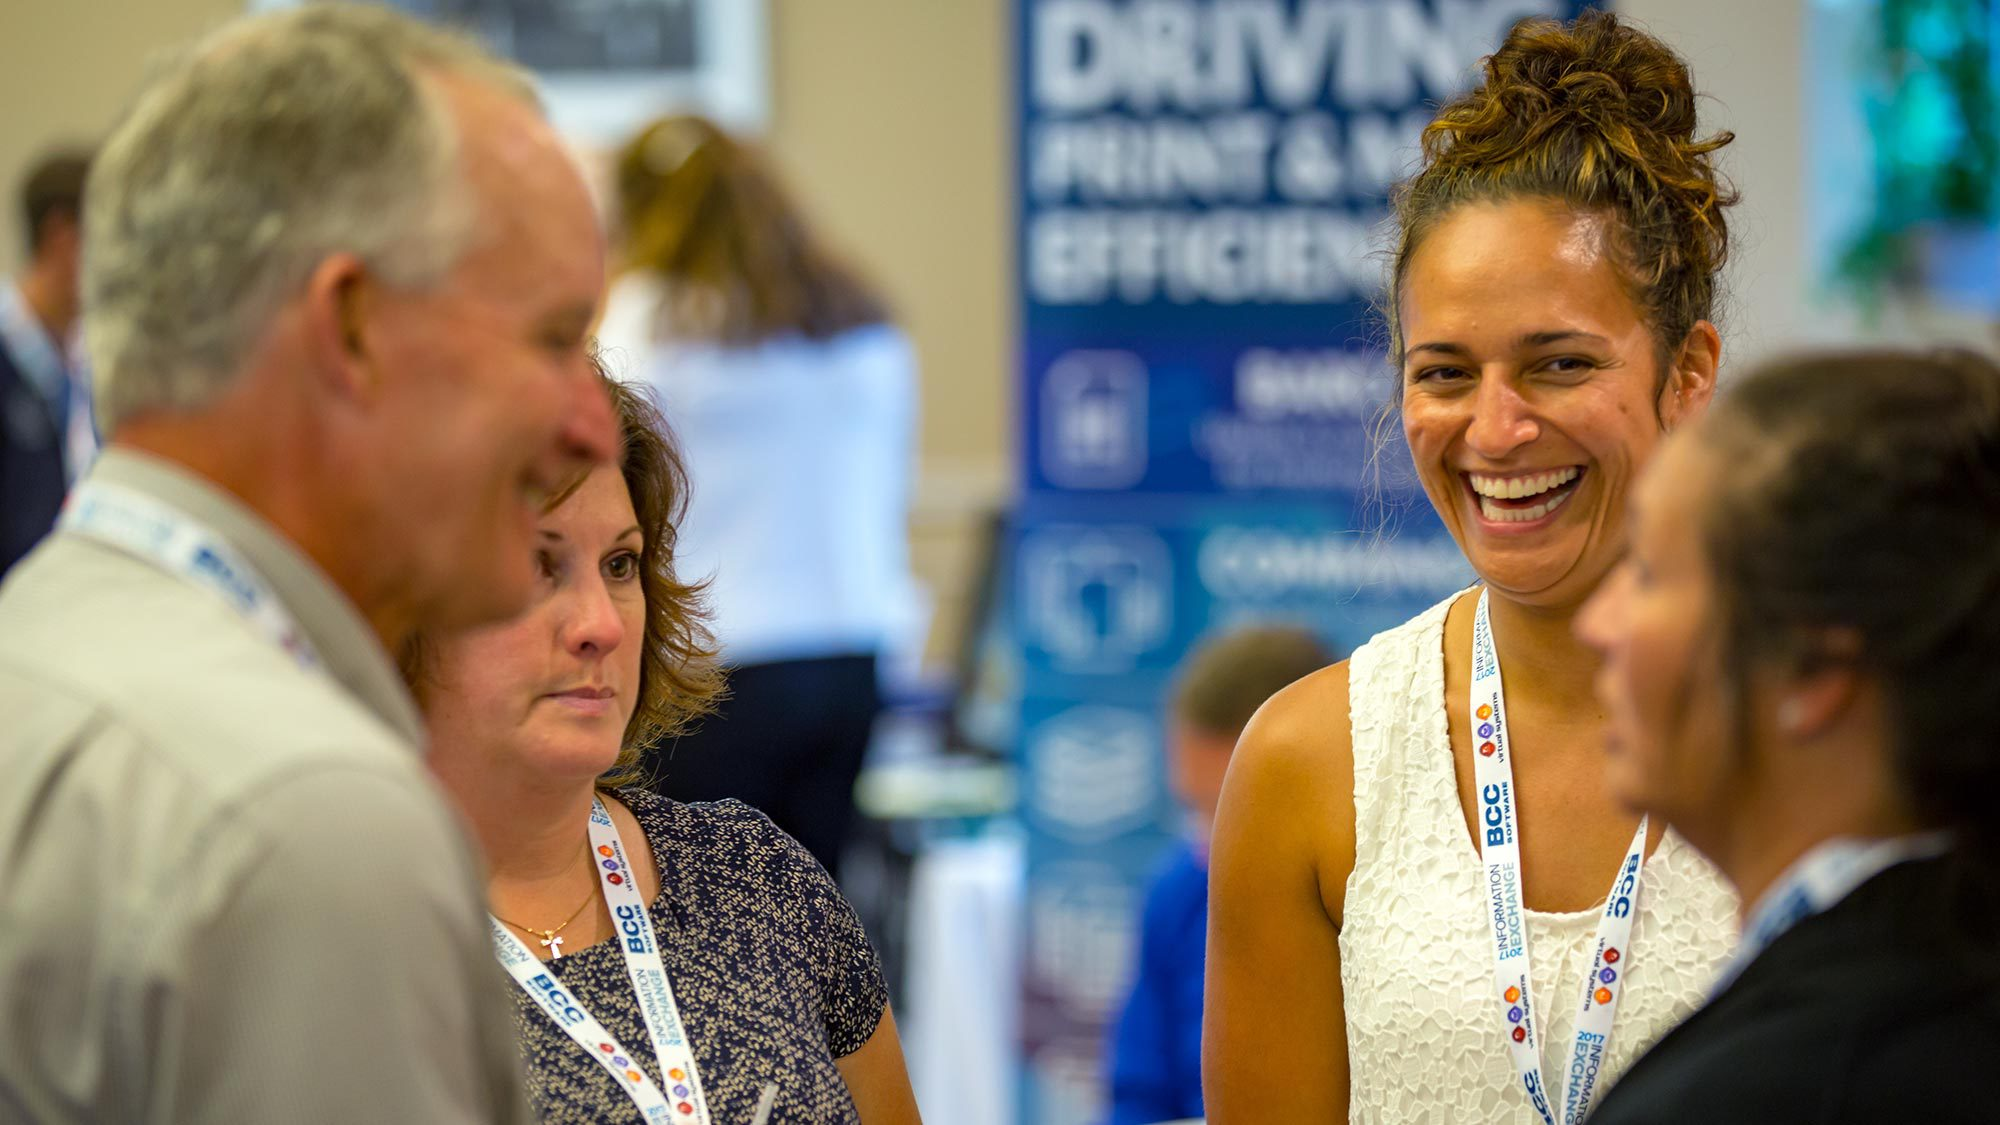 BCC Software customer, Natalie Bisnow, shares a laugh during the Meeting Zone.